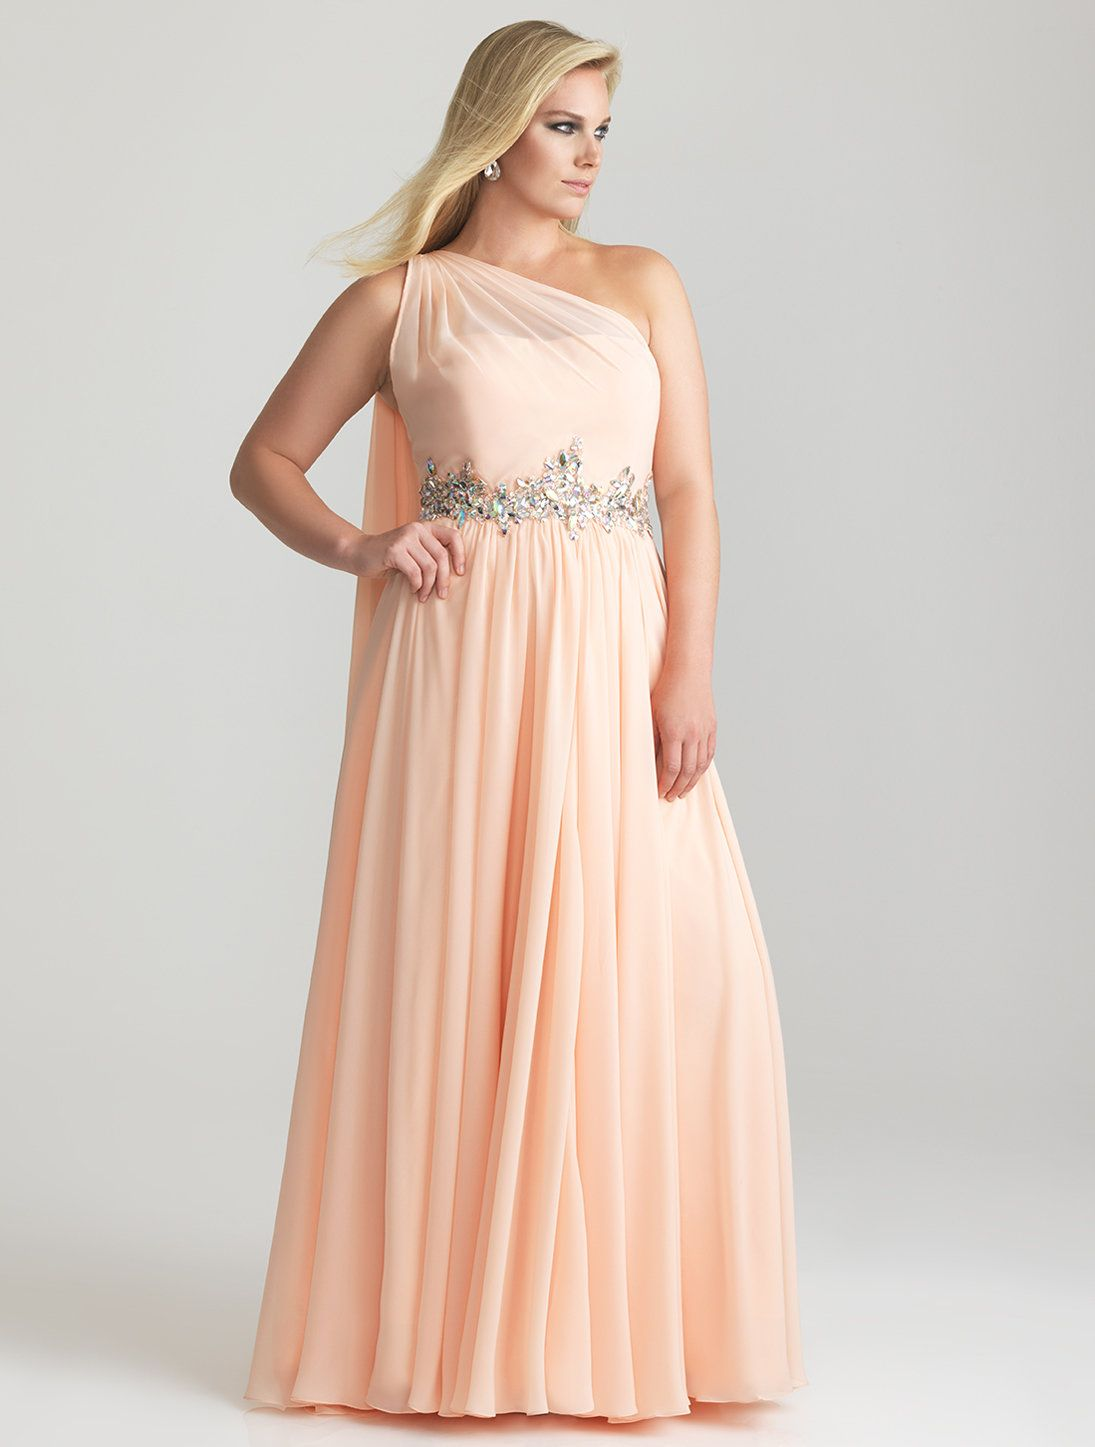 Plus Size Vintage Prom Dresses | ... Plus Size Prom Dress ...